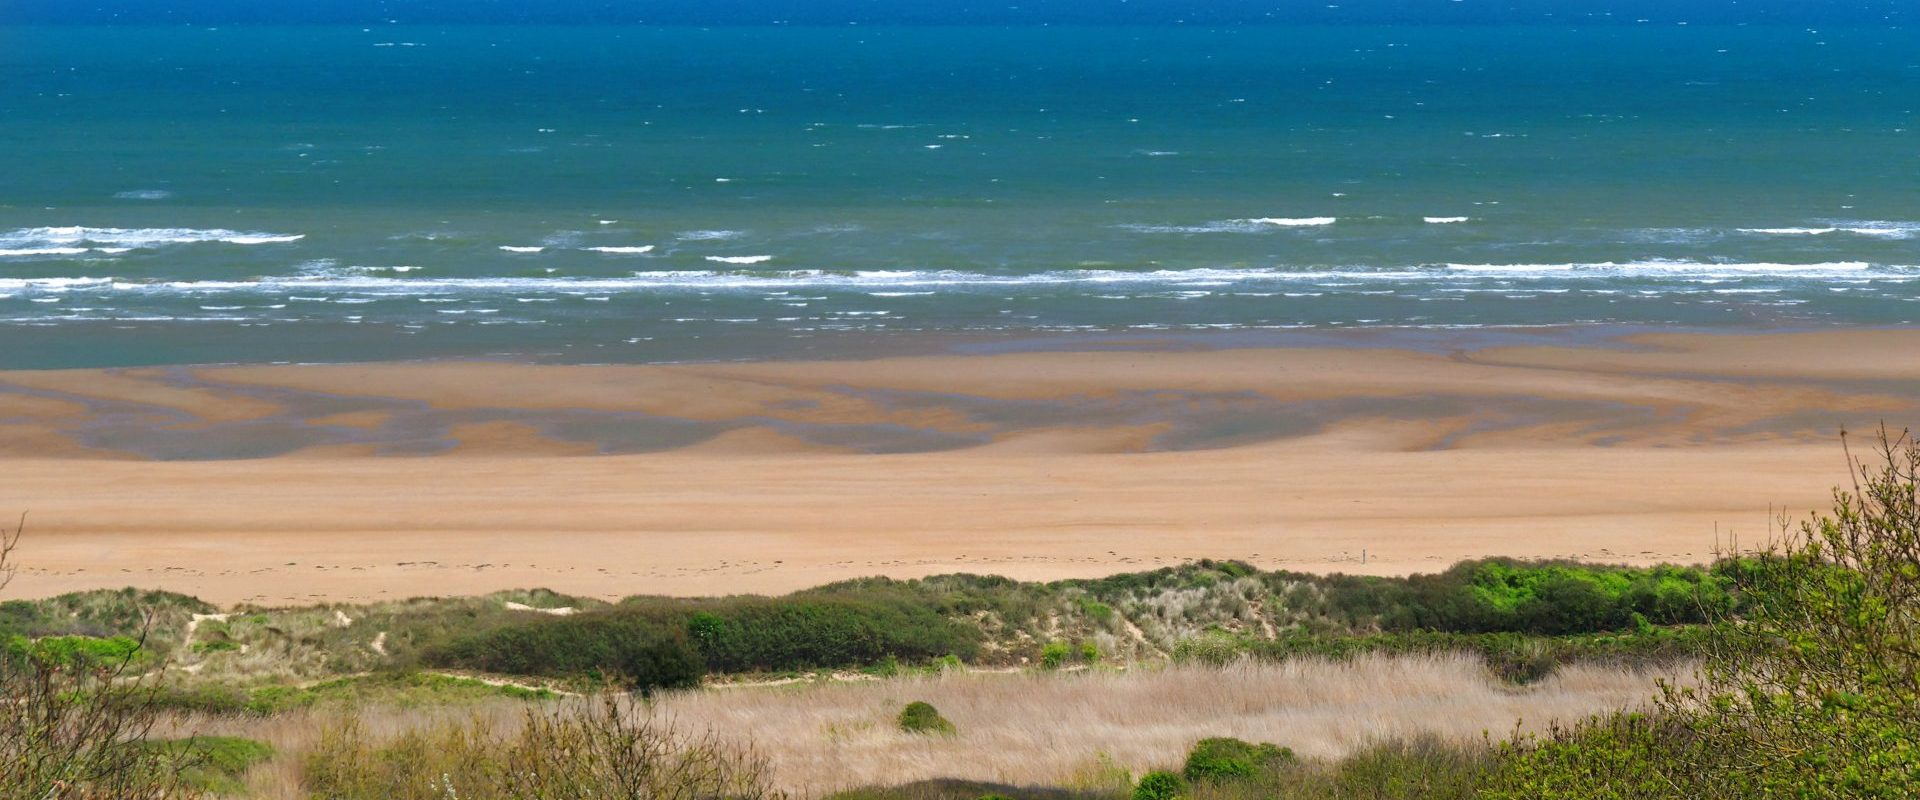 Camping Le Fanal: Omaha Beach Colleville sur Mer 01